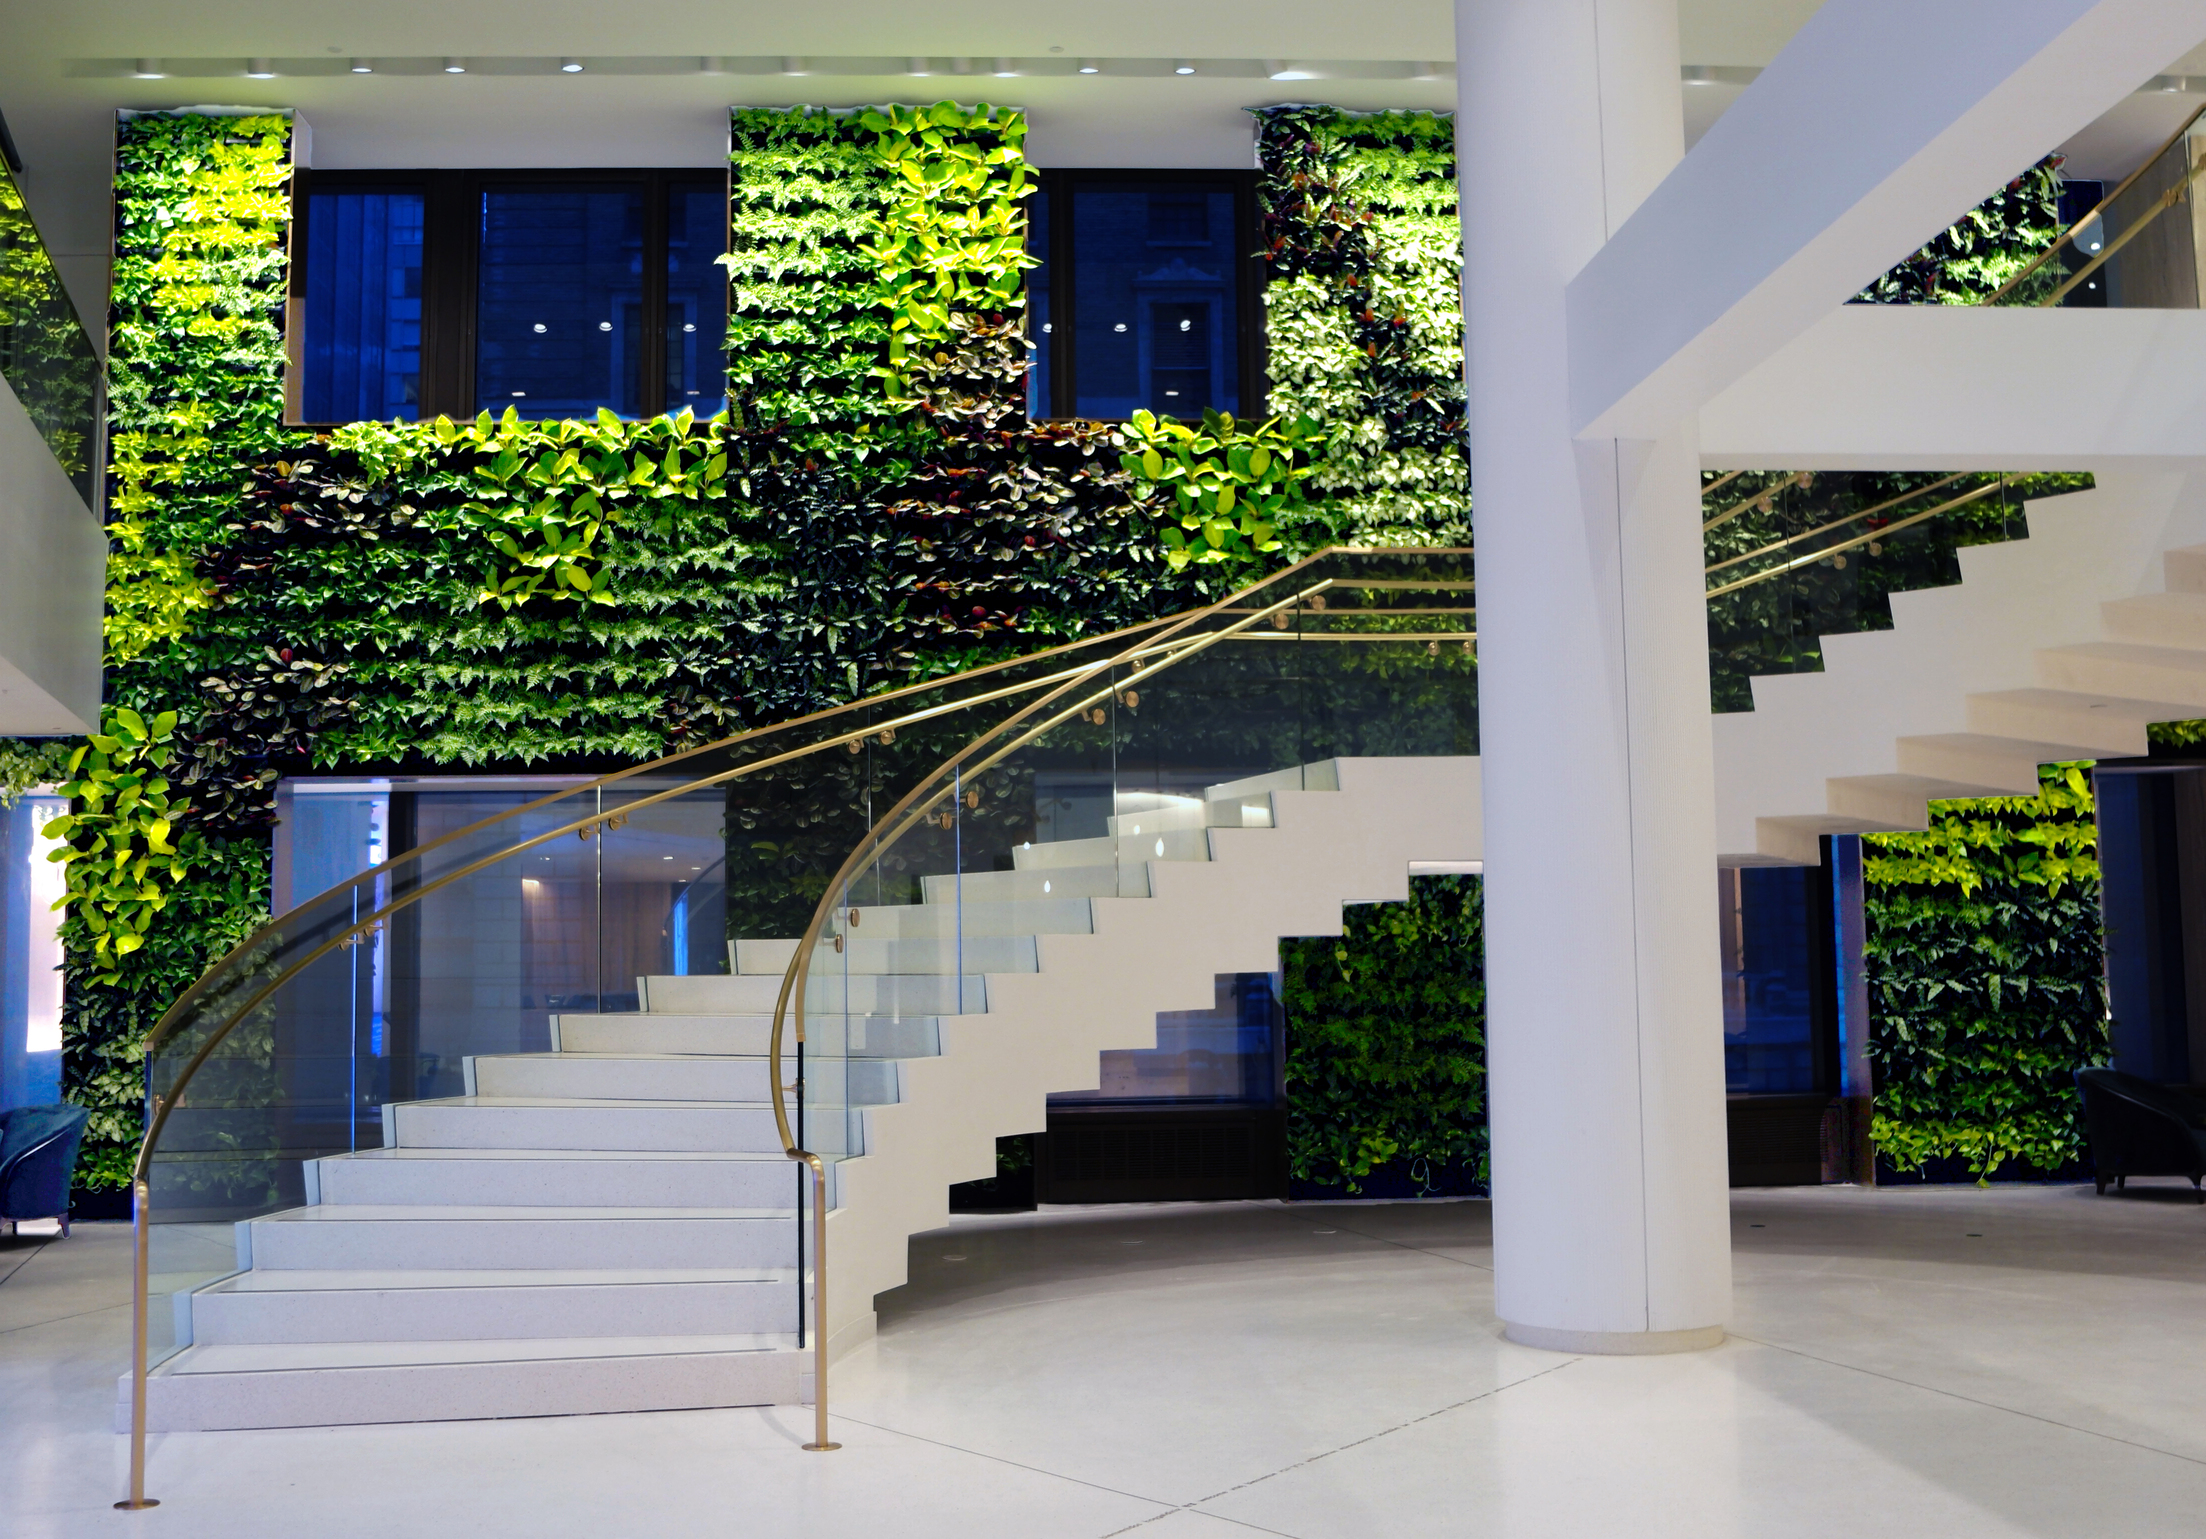 Living Walls: Why Go Vertical and How to Make it Work in Your Space